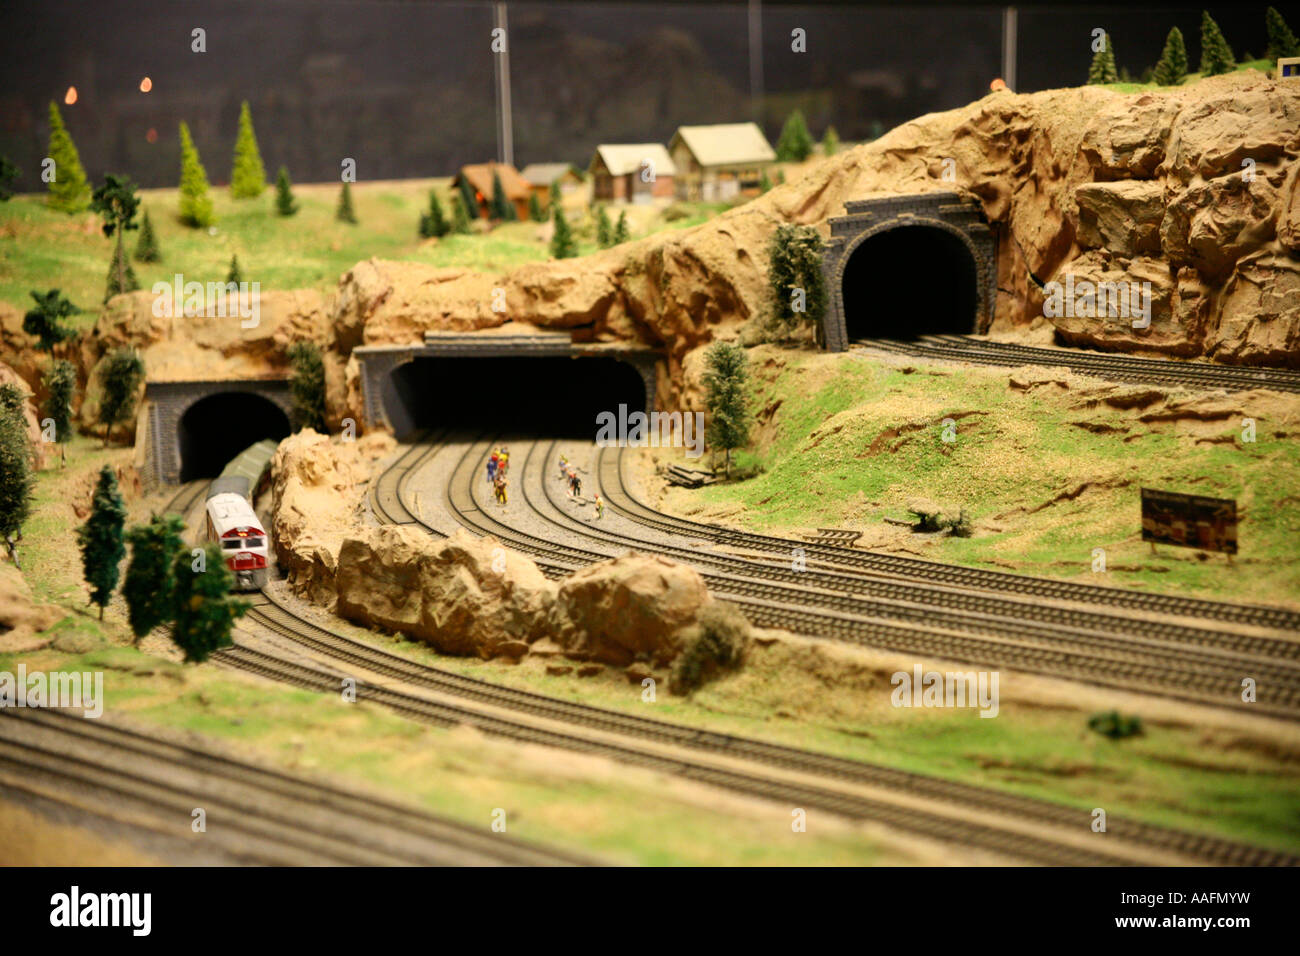 Emerald Lake Model Railway, near Puffing Billy Station, Melbourne, Victoria - Stock Image